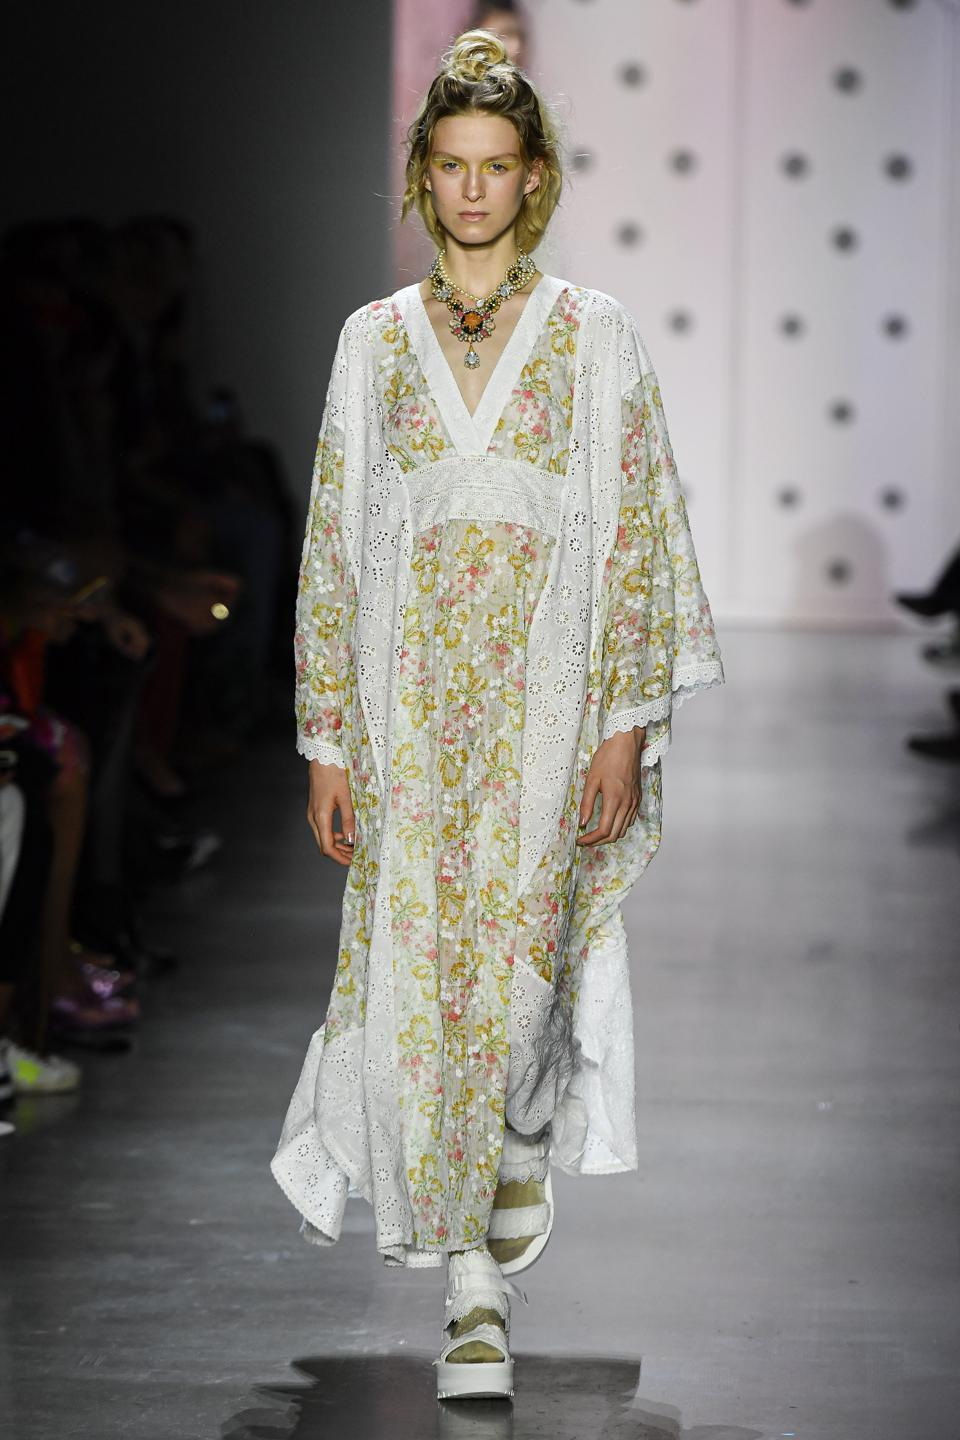 A model wearing Anna Sui's a look from the Spring 2020 Runway collection, a floral long dress with matching robe style jacket